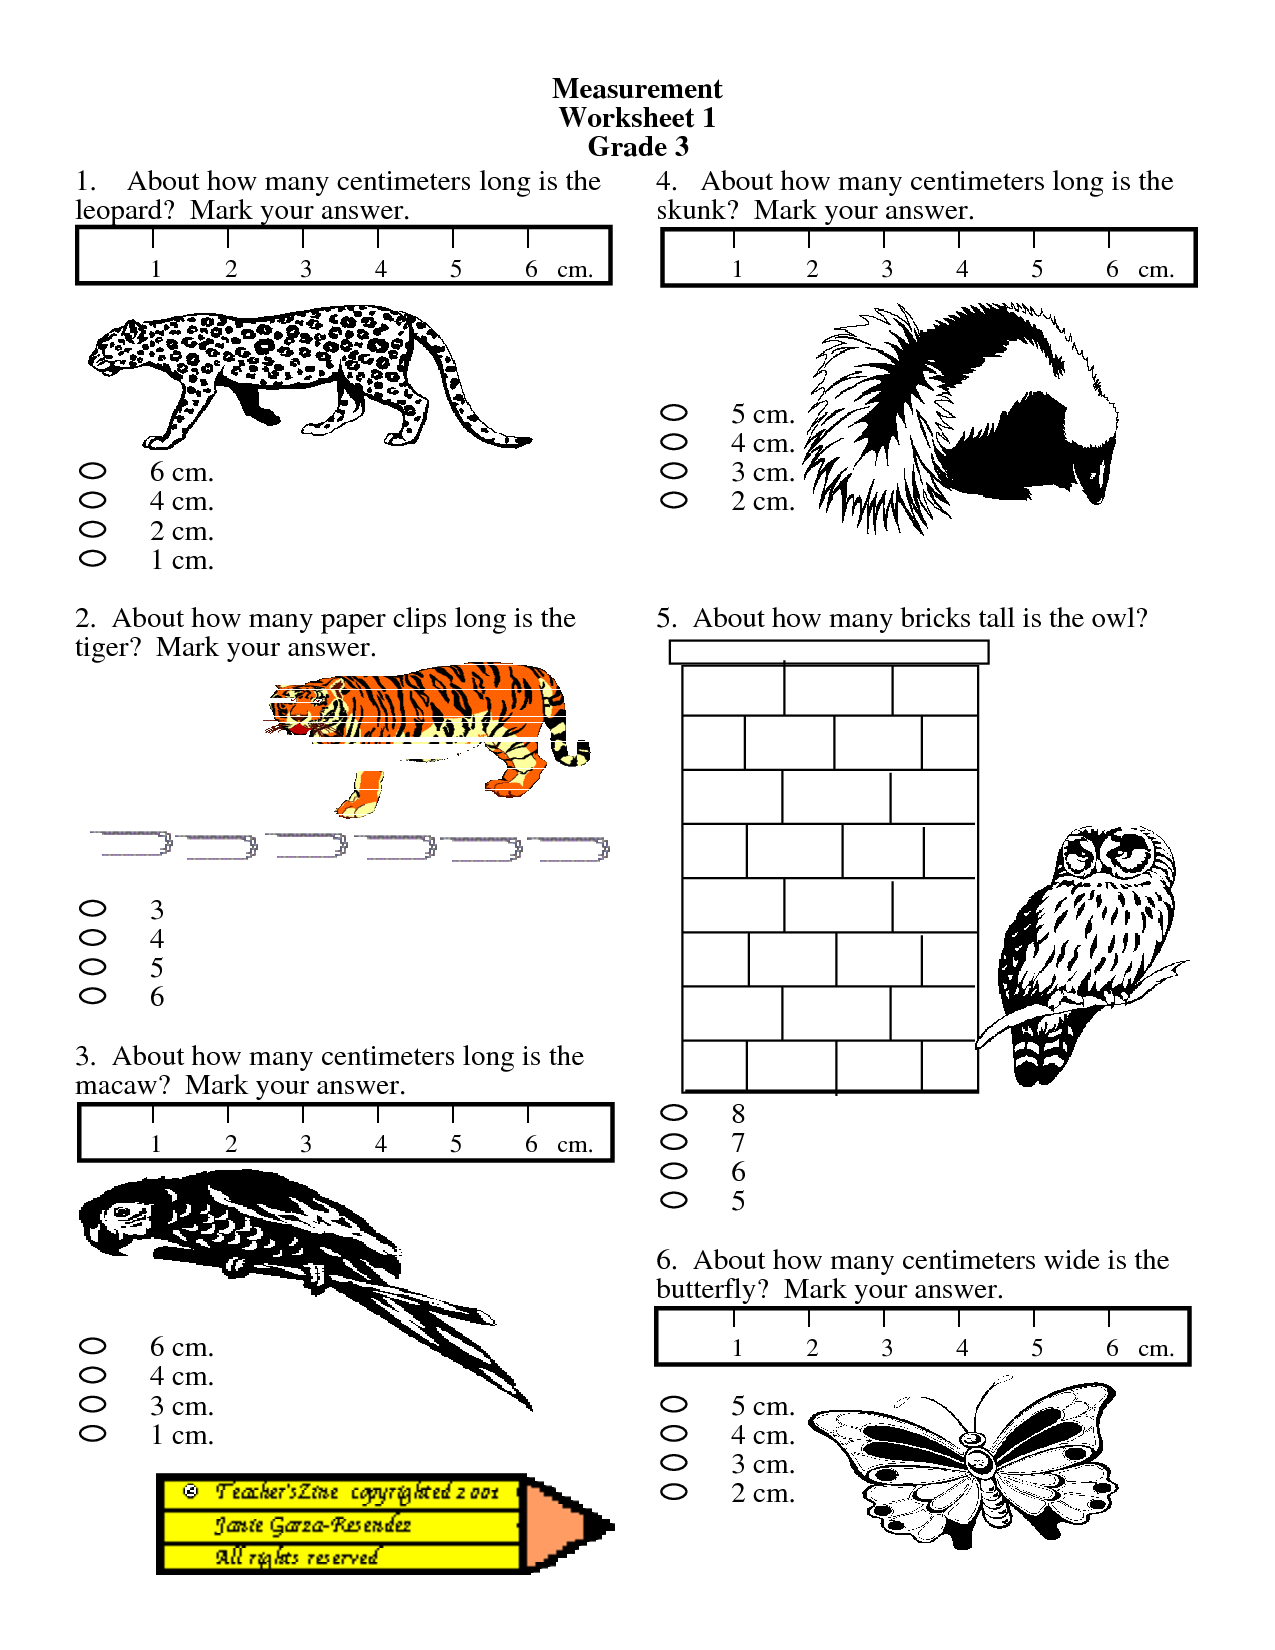 Measurement Worksheets Grade 2 Coloringkidsco – Measurement Worksheets Grade 1